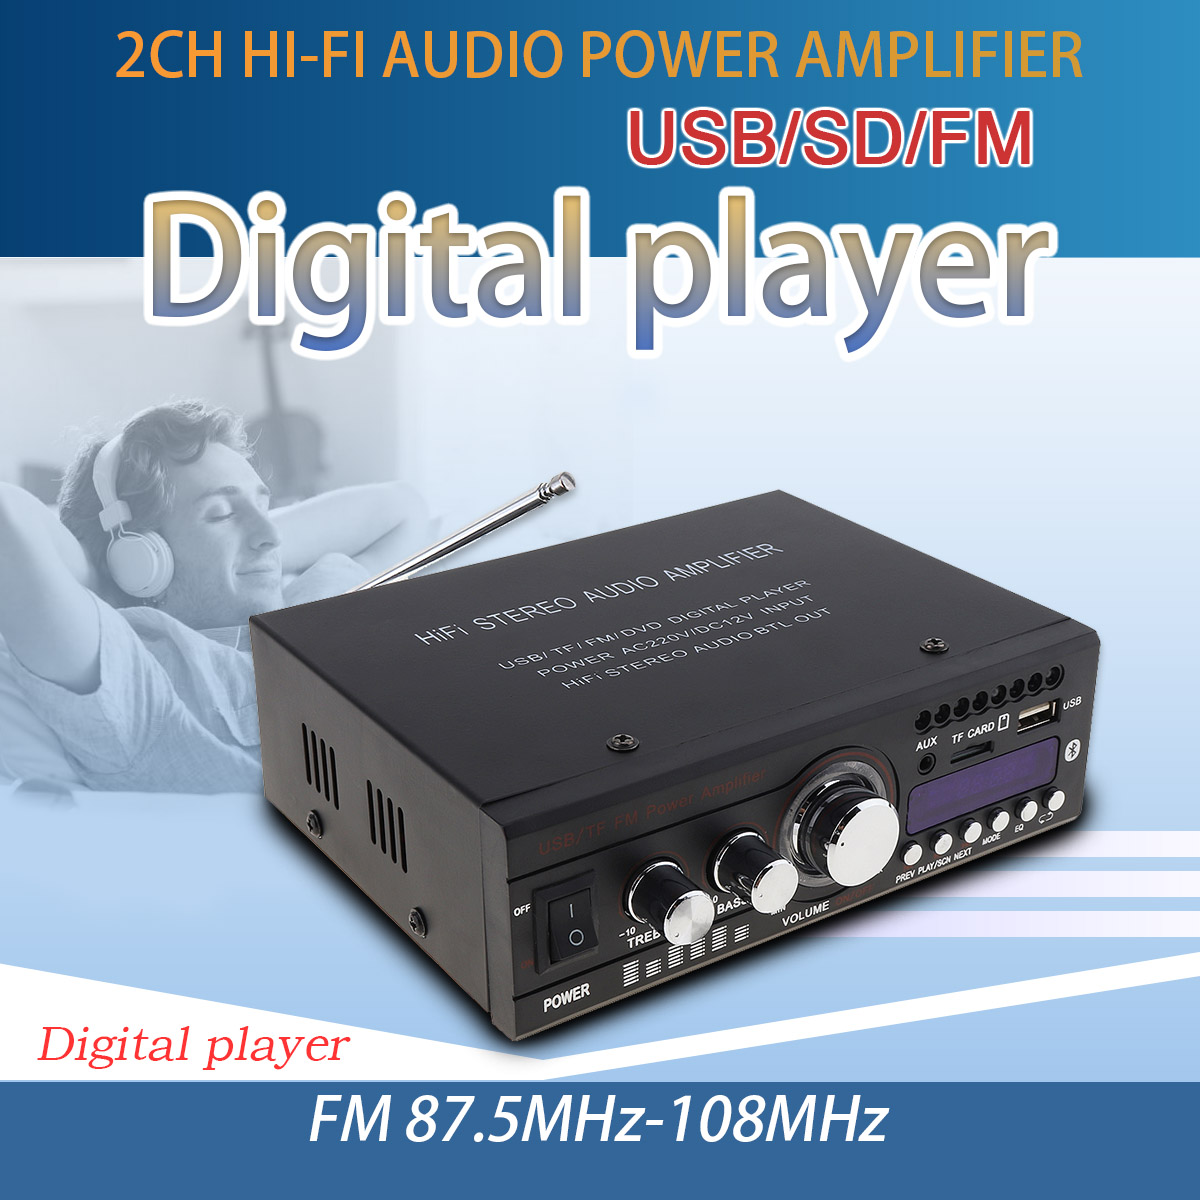 DC 12V / AC 220V Bluetooth 2CH HiFi Car Stereo Audio Power Amplifier FM Radio Auto Hi-Fi Digital Player Support USB SD FM DVD new car bluetooth hifi bass power amp digital auto amplifier stereo usb tf radio audio mp3 music with remote 220v